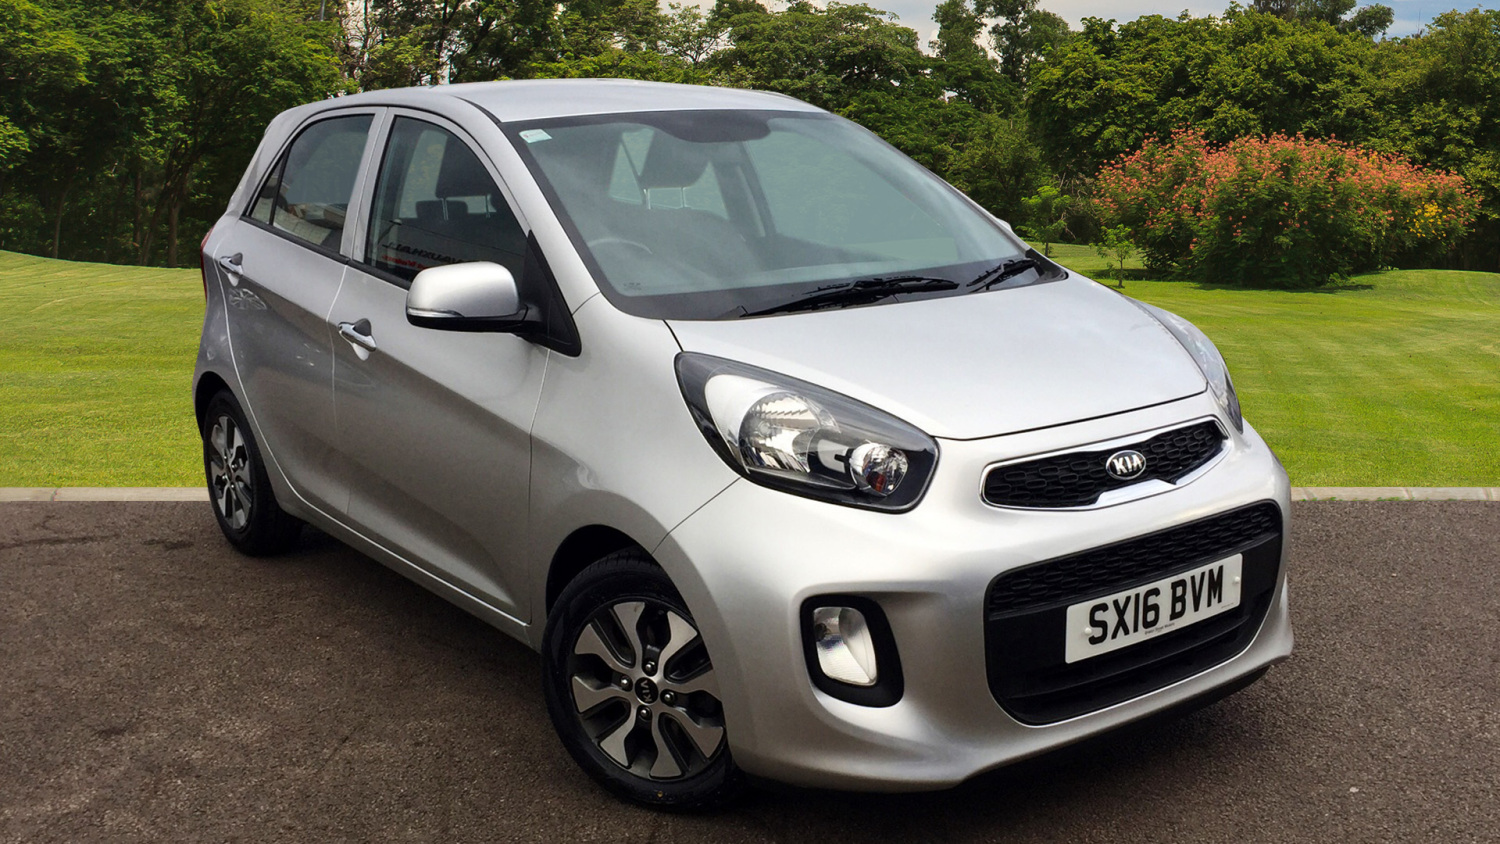 used kia picanto 2 5dr auto petrol hatchback for sale. Black Bedroom Furniture Sets. Home Design Ideas